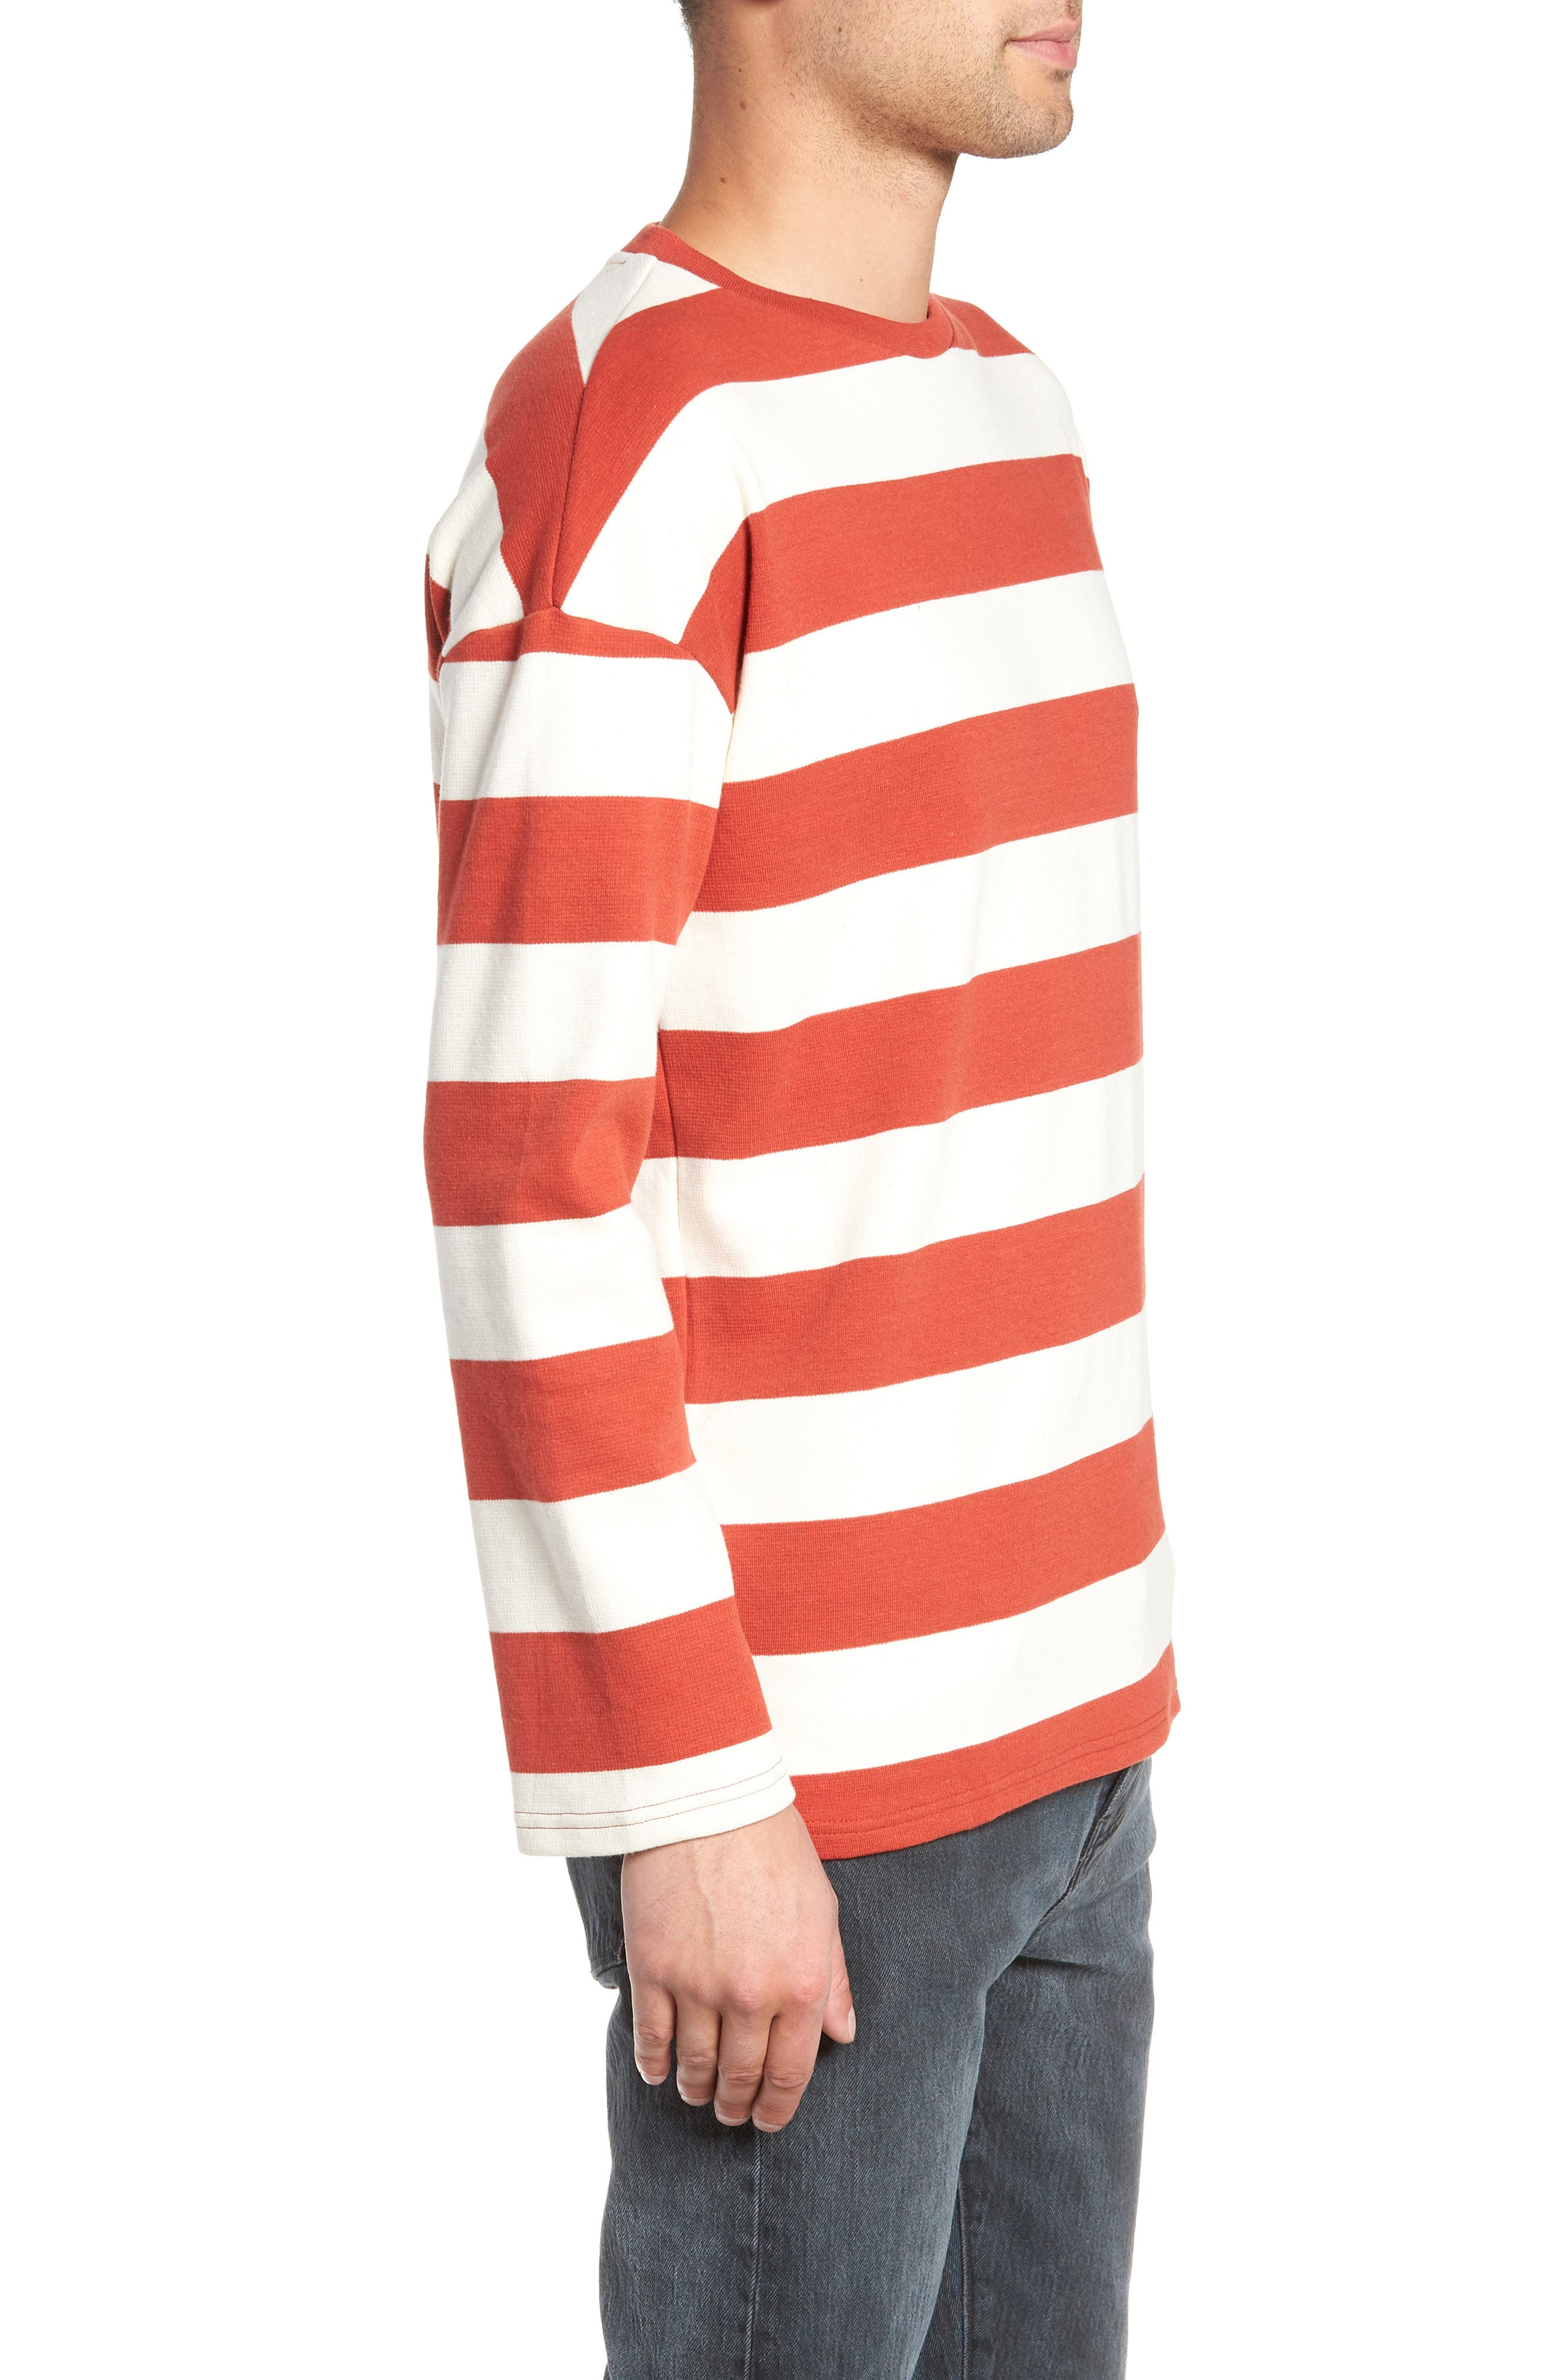 Stripe Crewneck Sweatshirt,                             Alternate thumbnail 3, color,                             ORANGE